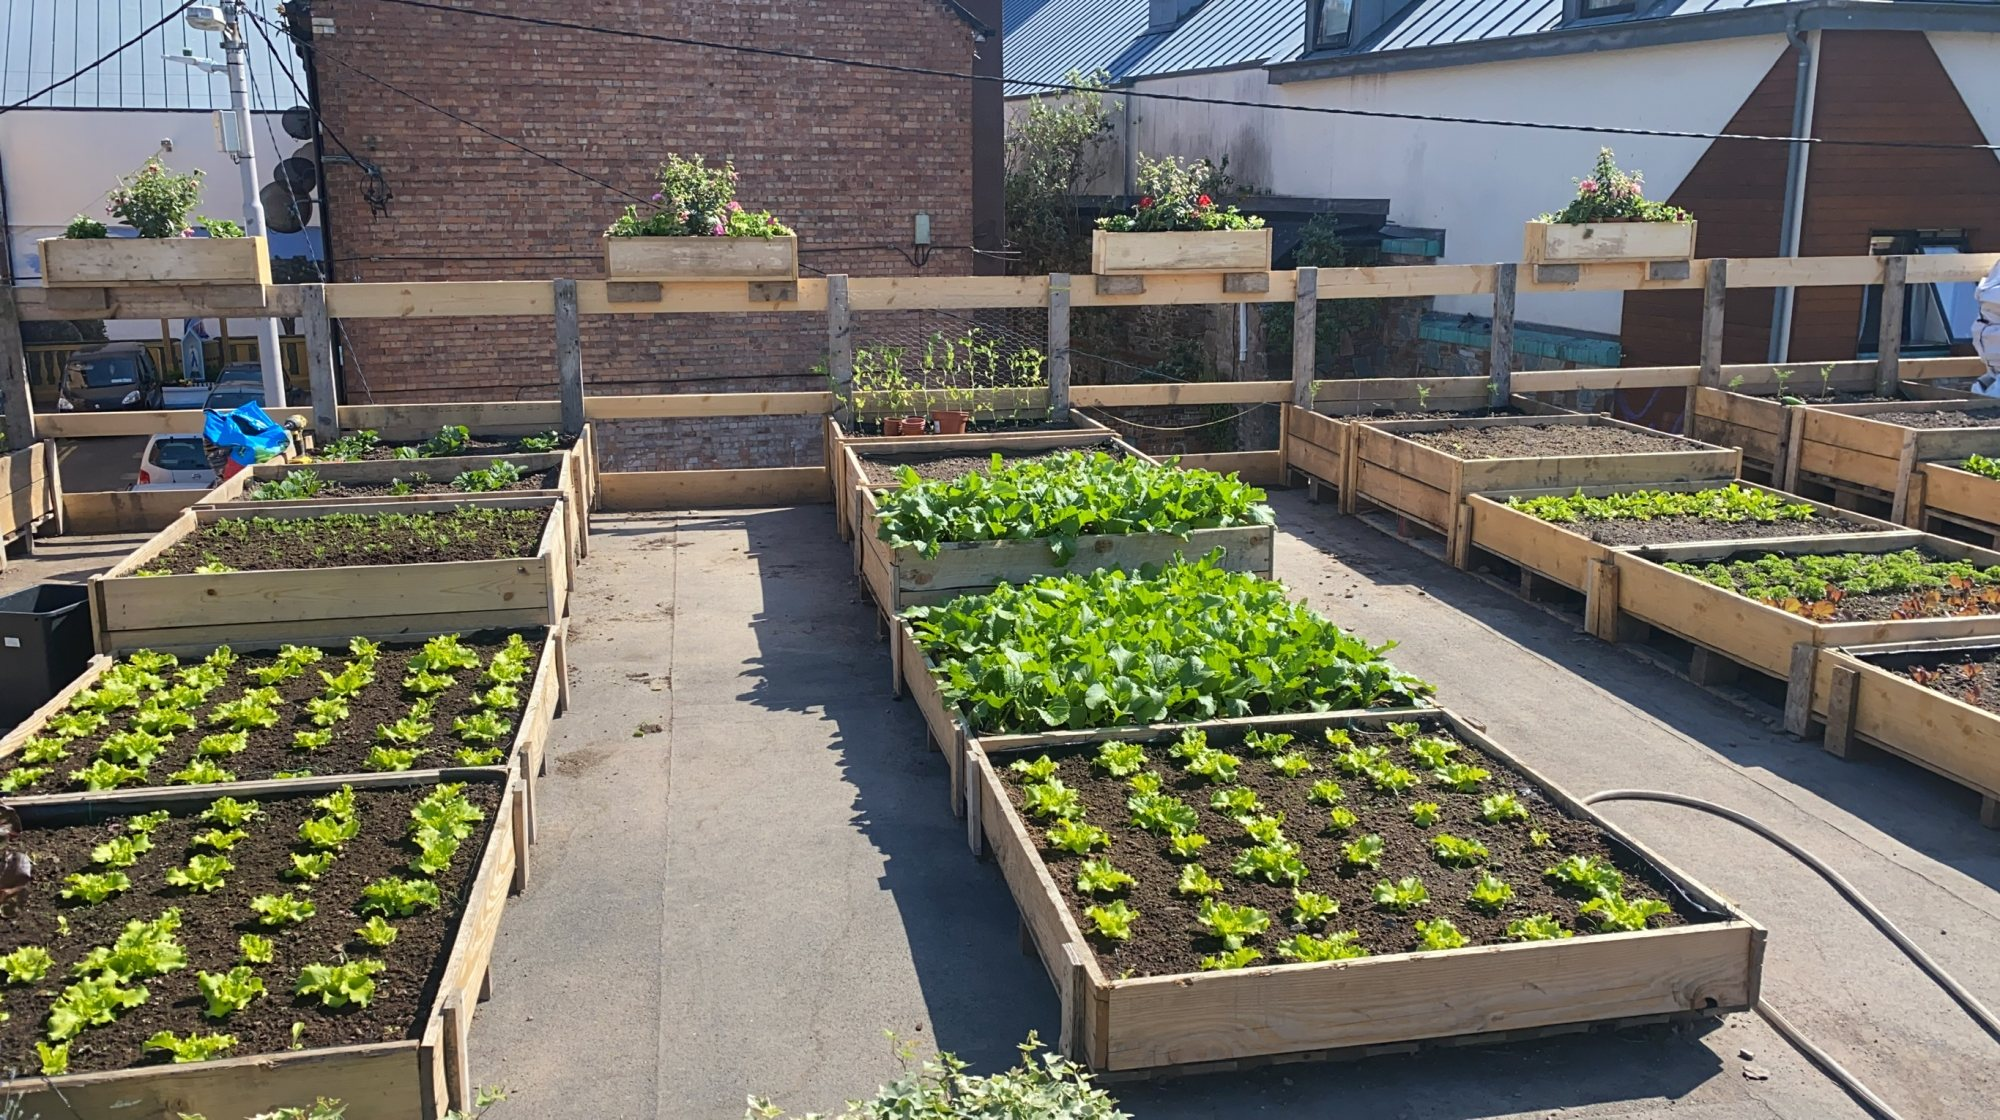 Sustainable Farming In The Heart of Cork City